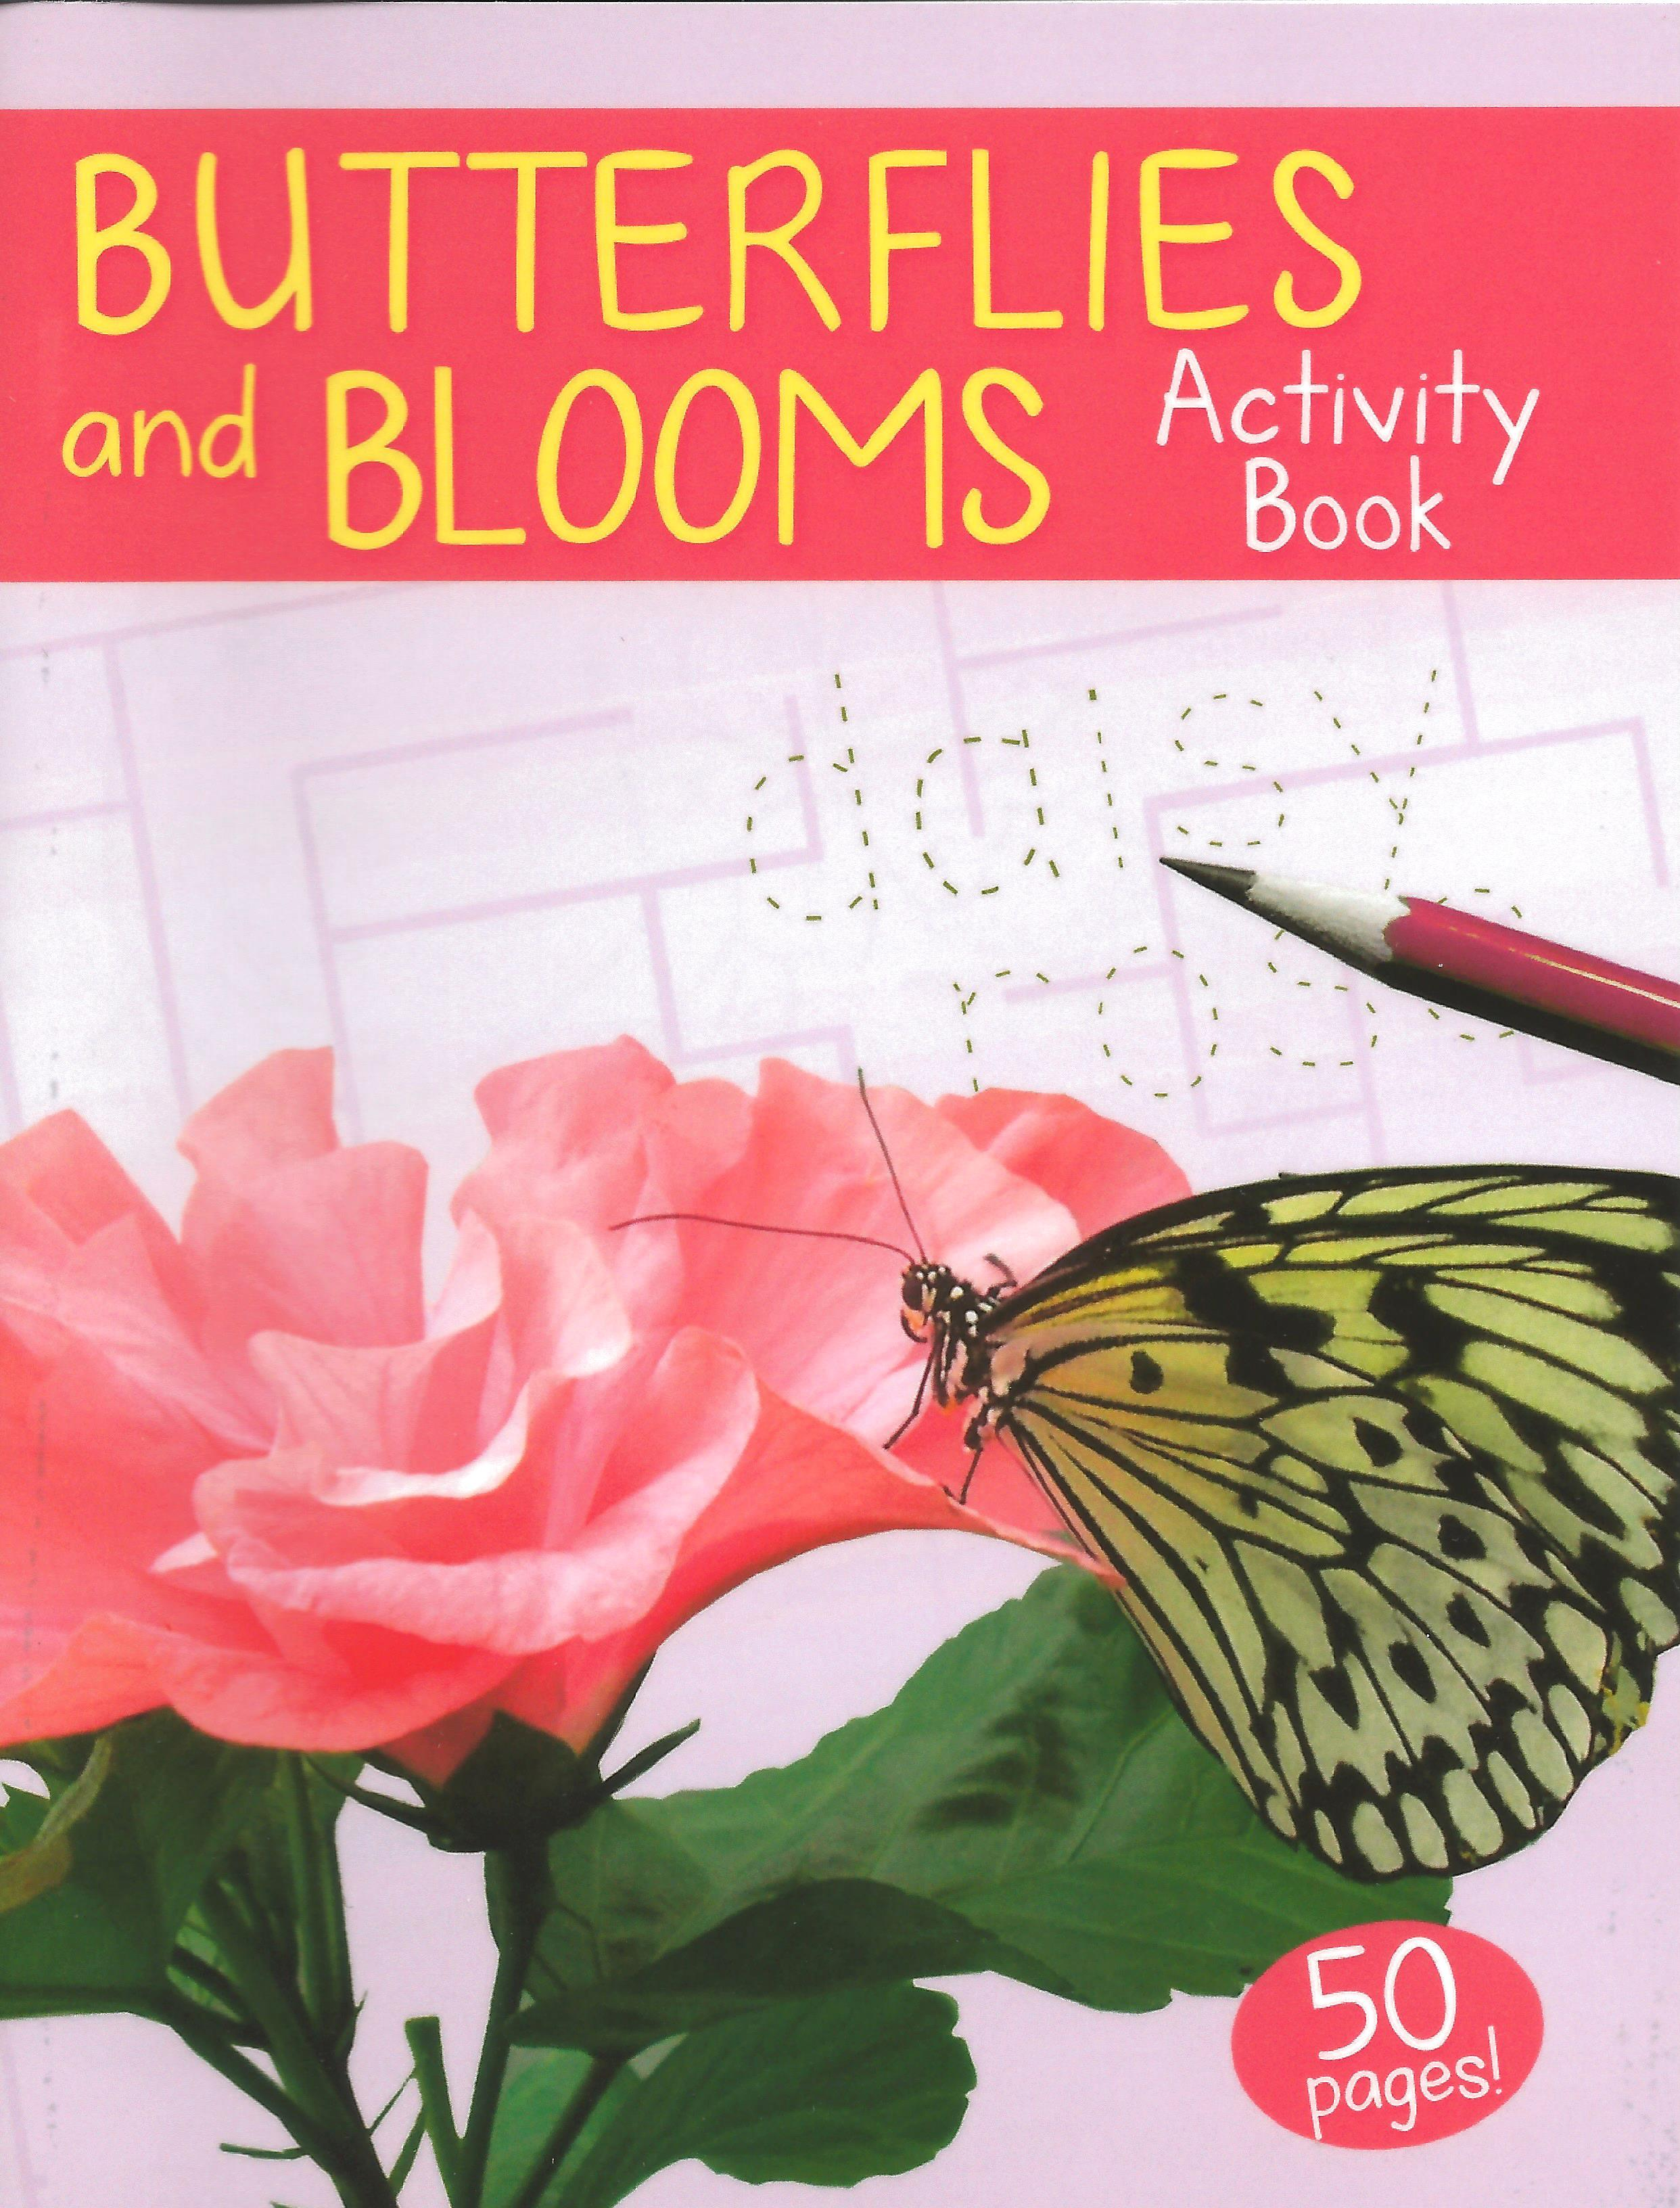 Butterflies and Blooms Mini Activity Book